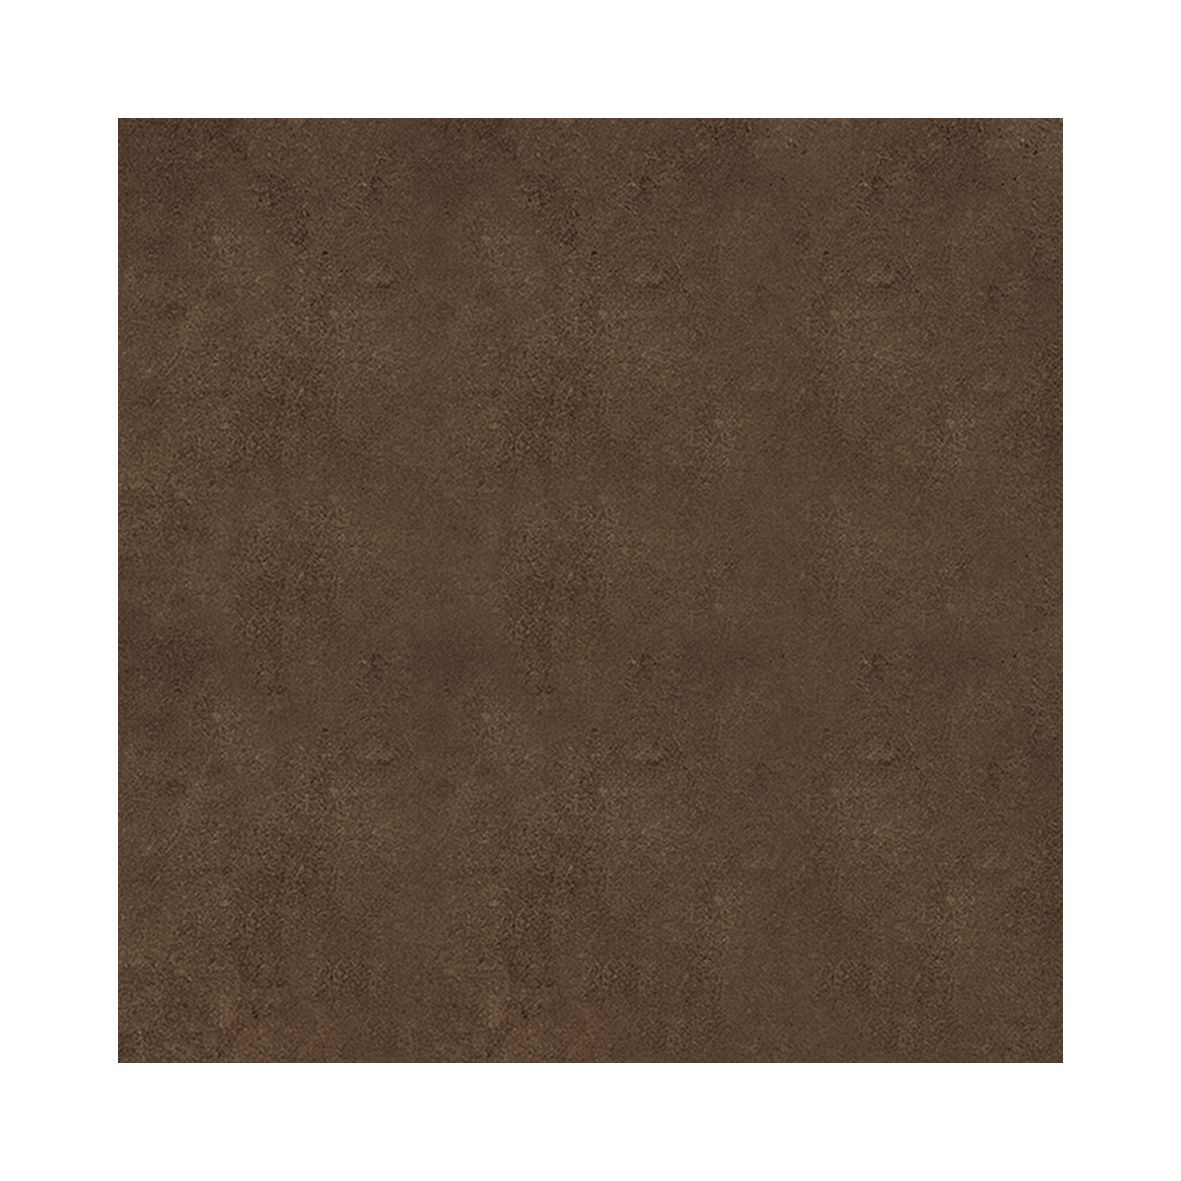 Gemini young stone mocha bathroom kitchen living room gemini tiles young stone range mocha brown glazed porcelain suitable for wall floor and used in bathroom kitchen living room conservatory hallway dailygadgetfo Image collections